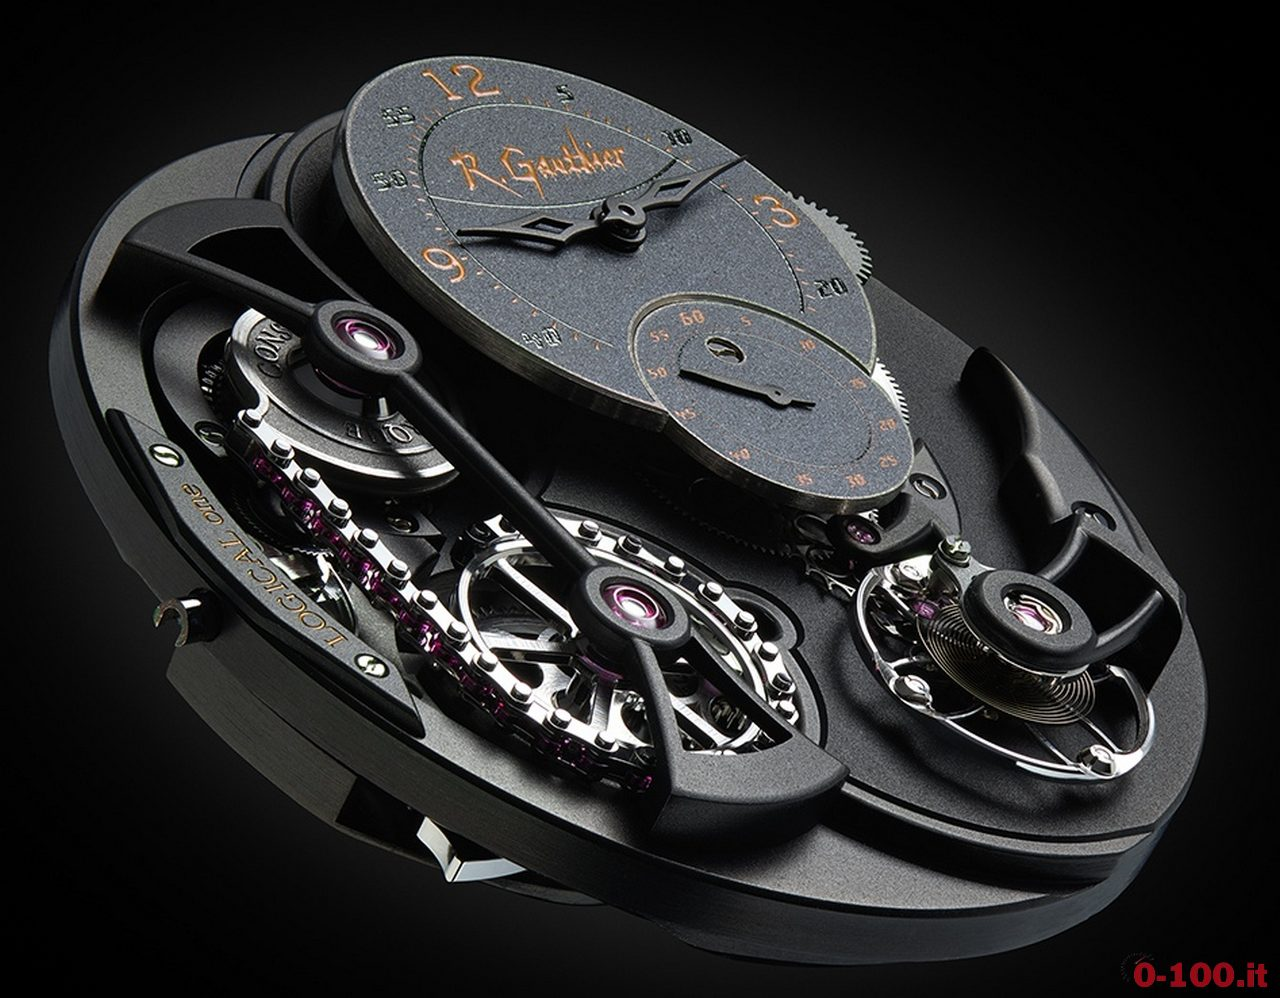 romain-gauthier-logical-one-enraged-limited-edition-prezzo-price_0-1001